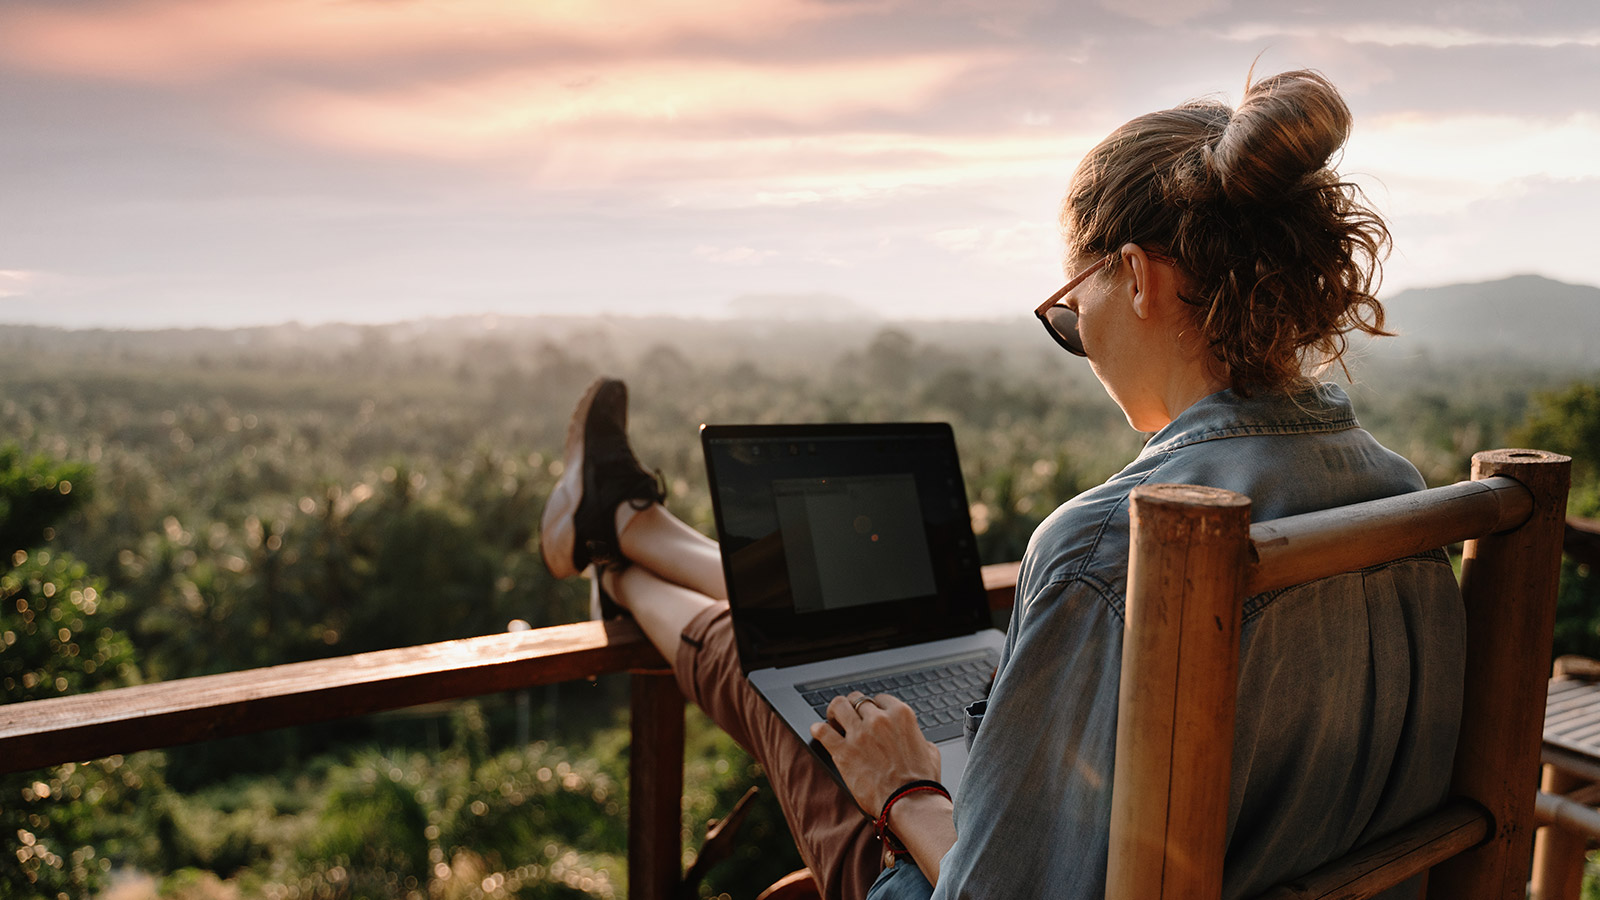 Young girl using a laptop at sunset